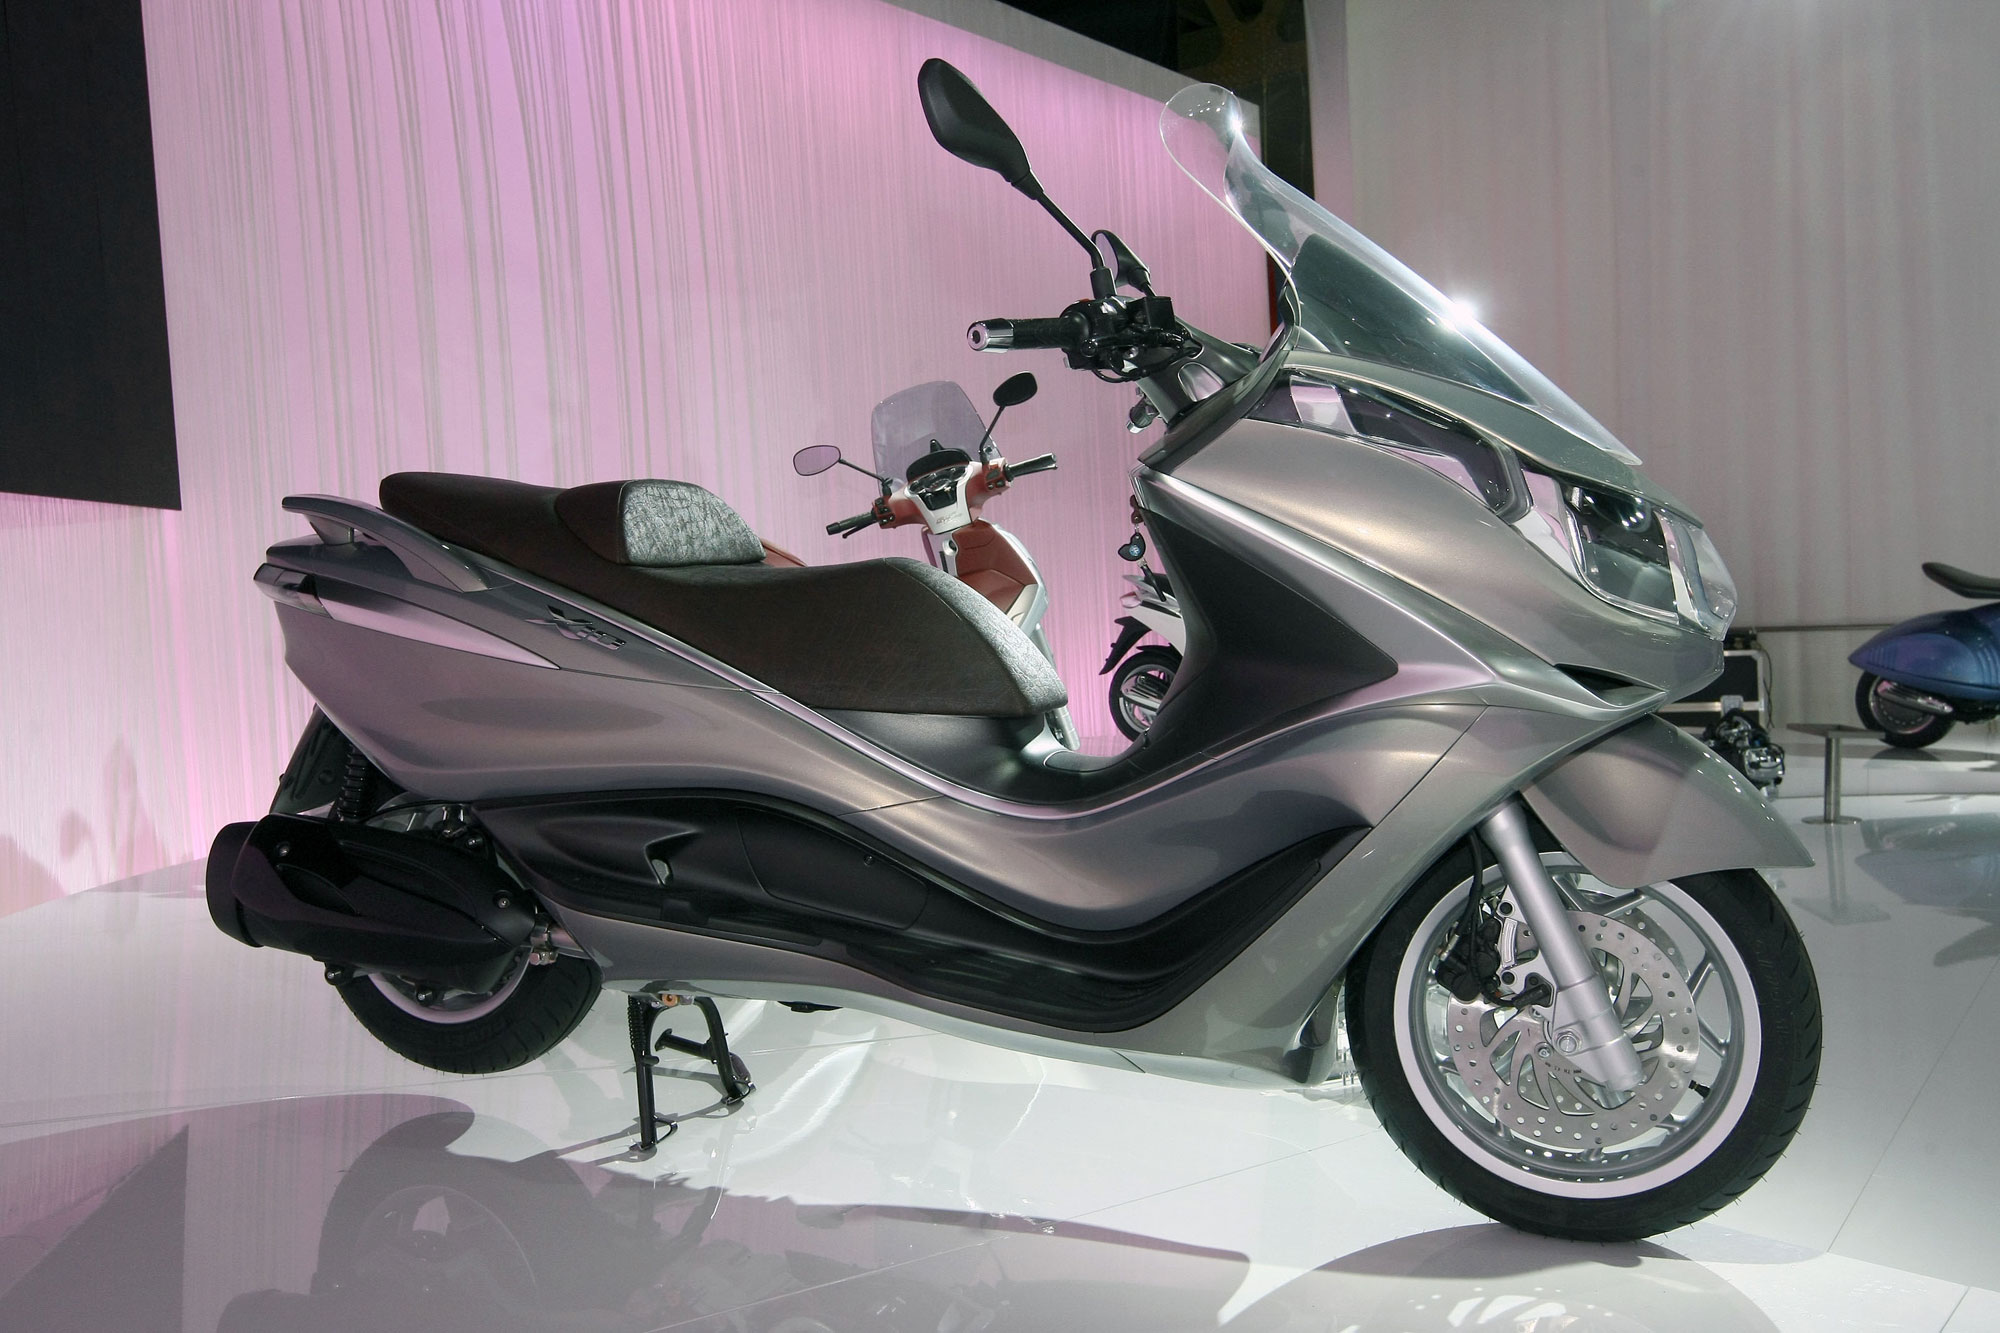 Cvt Im besides  moreover Kymco People S T further Piaggio X also Honda Odyssey Jdm. on continuously variable transmission cvt